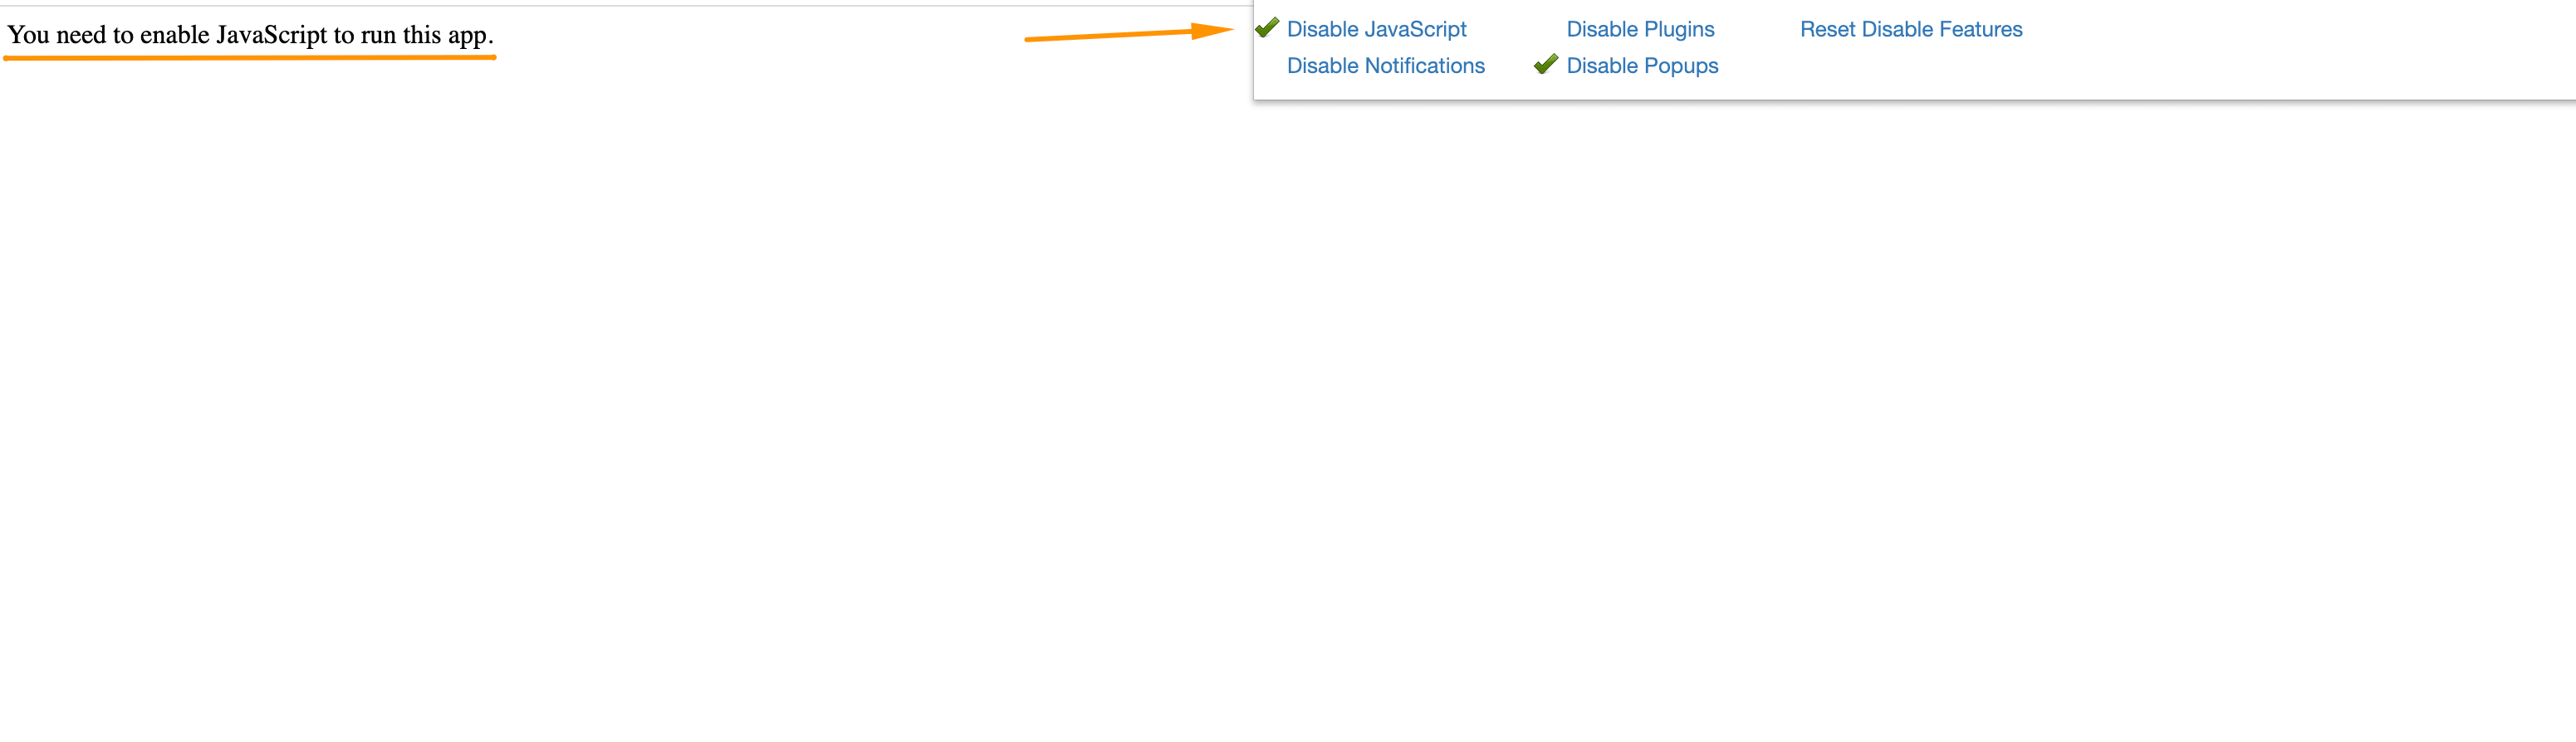 Open settings, click Disable JavaScriptand reload the page.